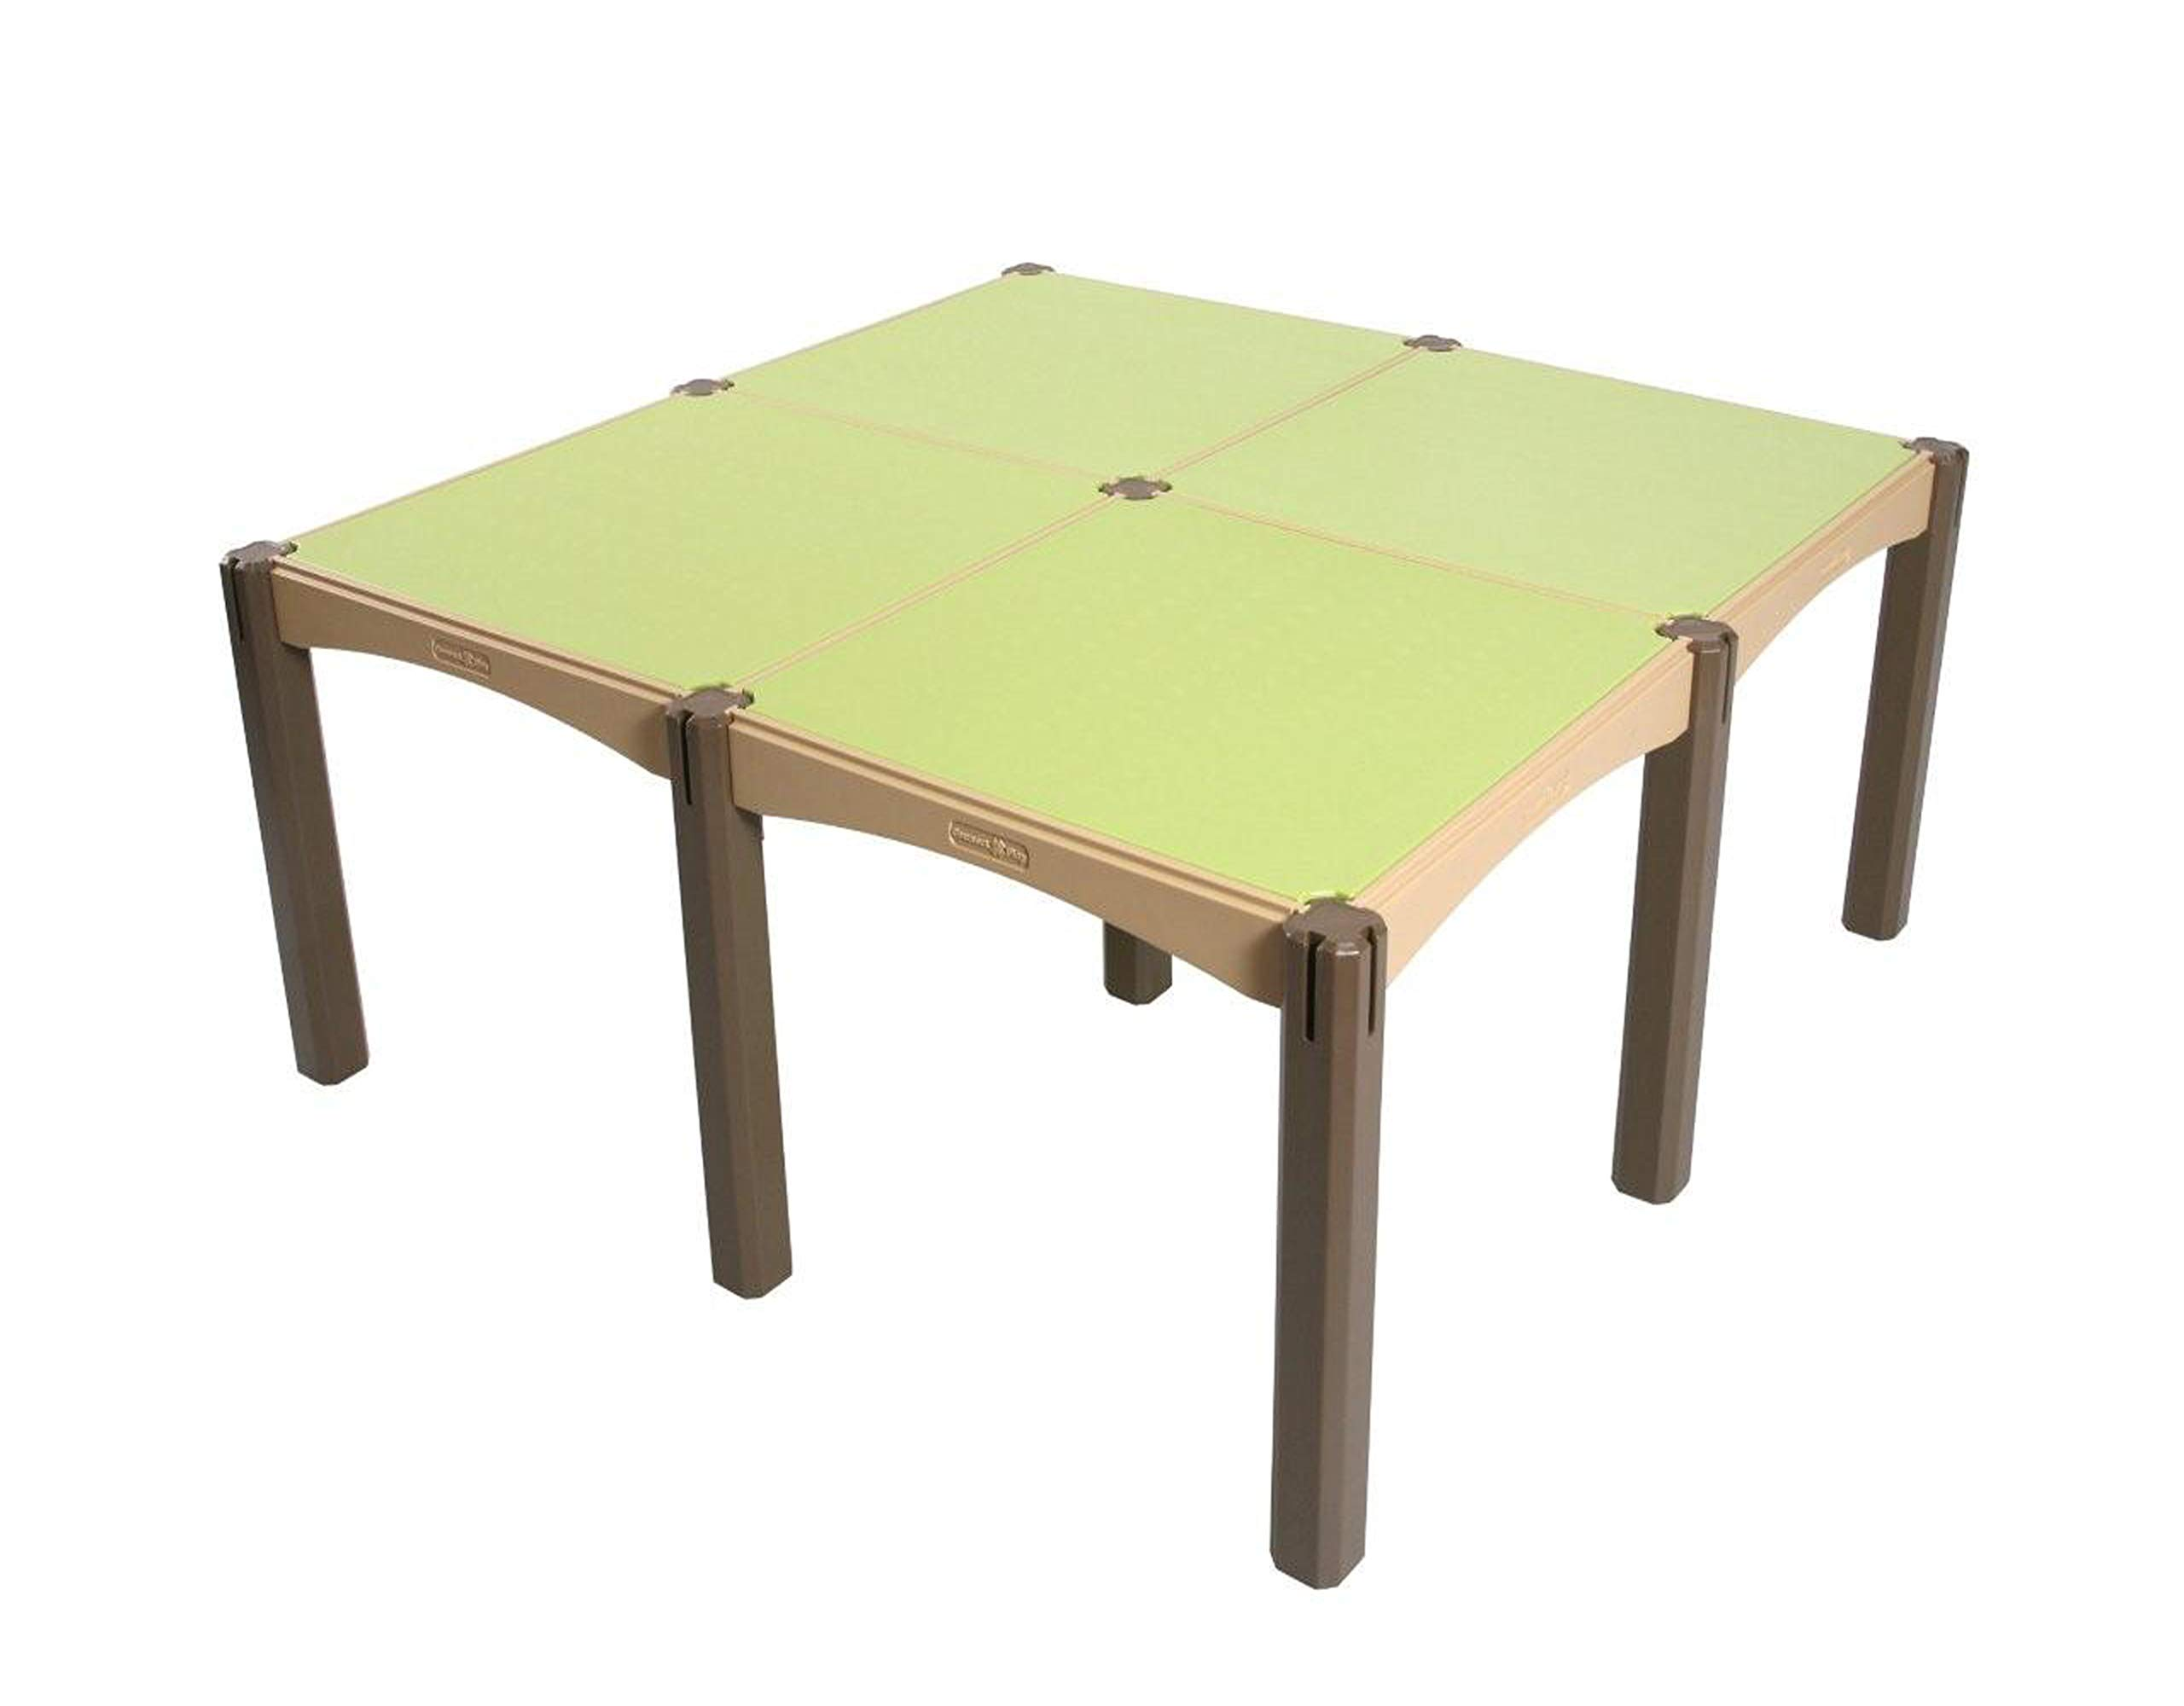 Connect 2 Play Kid's Activity Table - 4 Surface Panels